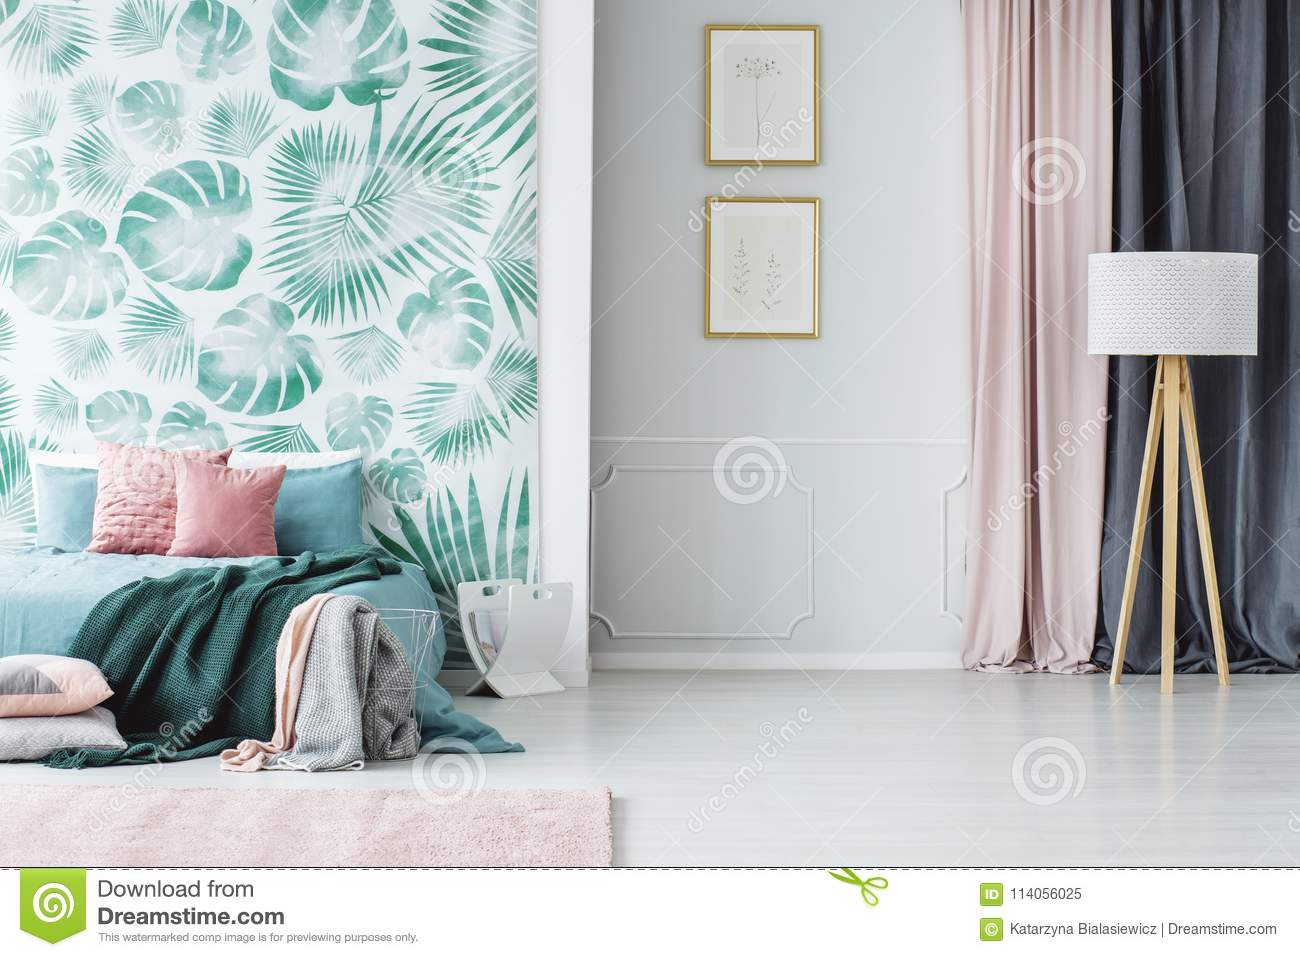 8b9acea0dd5 Wooden tripod floor lamp and a big bed with pillows and blankets in a cozy  pale green and pink bedroom interior